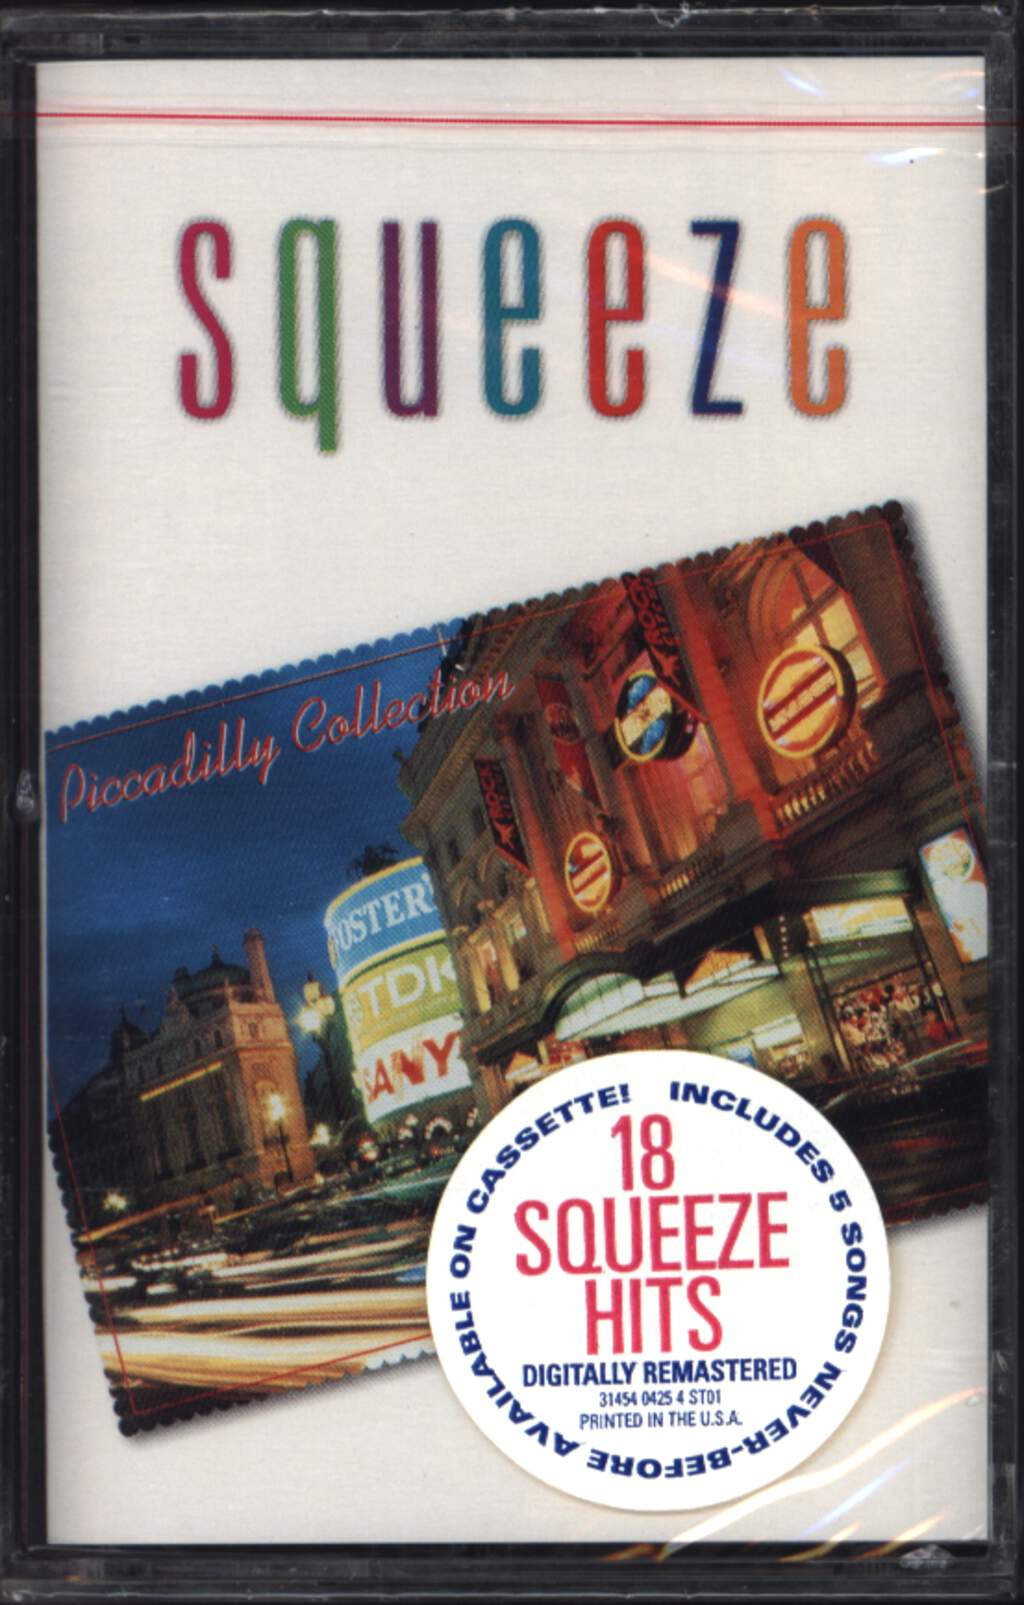 Squeeze: Piccadilly Collection, Compact Cassette